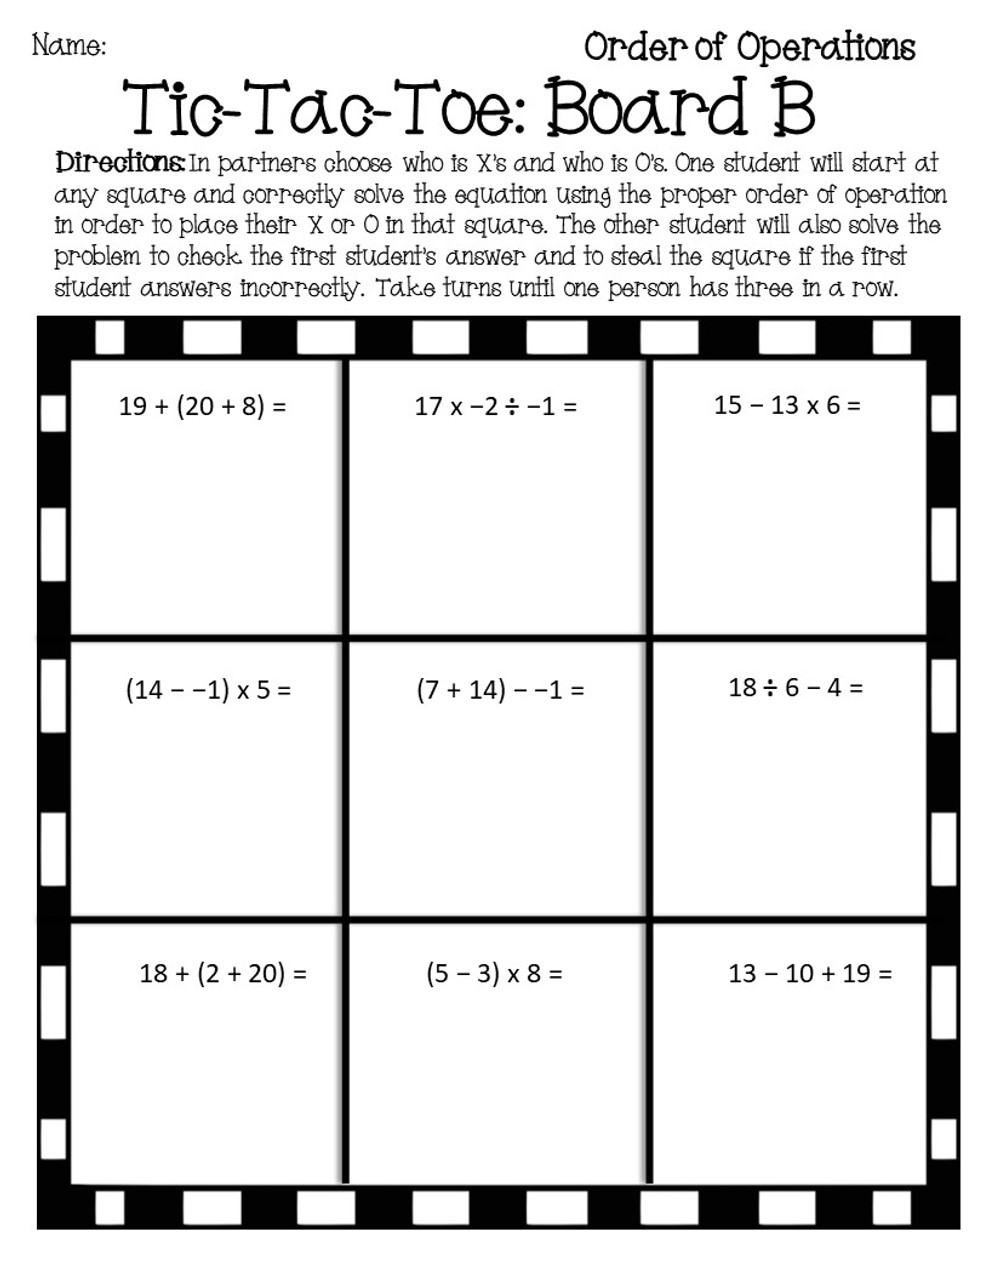 Order of Operations Tic Tac Toe Game